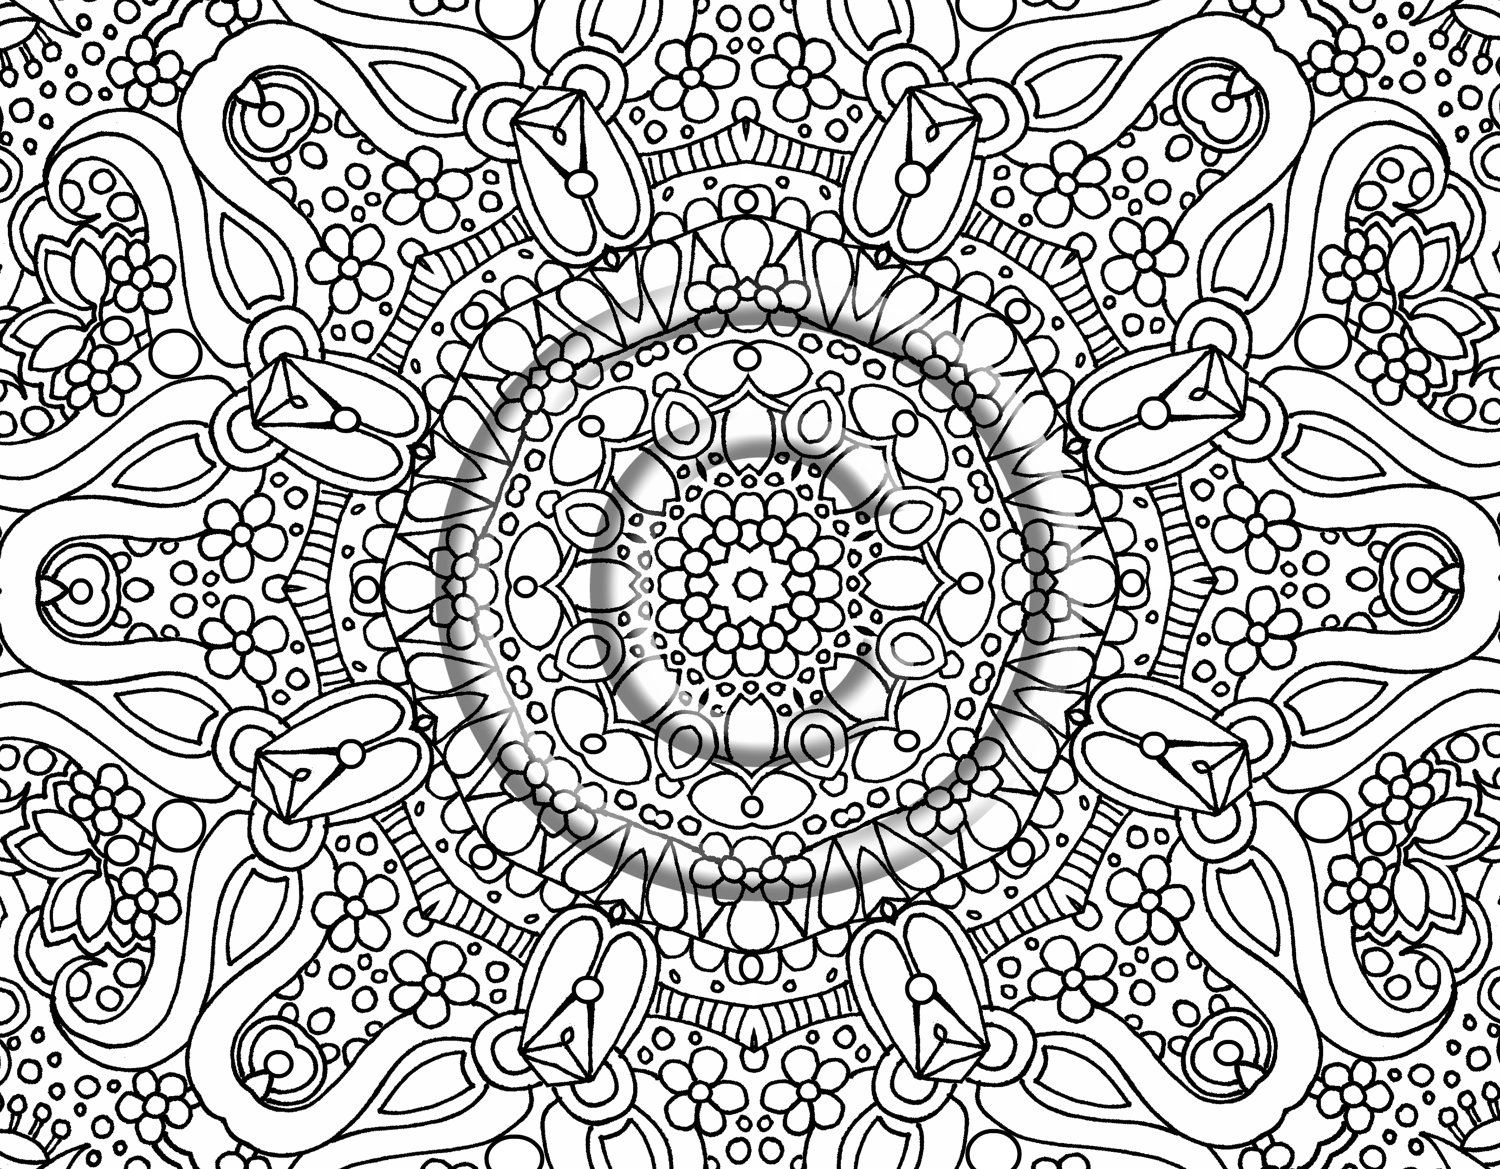 Hard mandala coloring pages for adults - Hard Coloring Pages